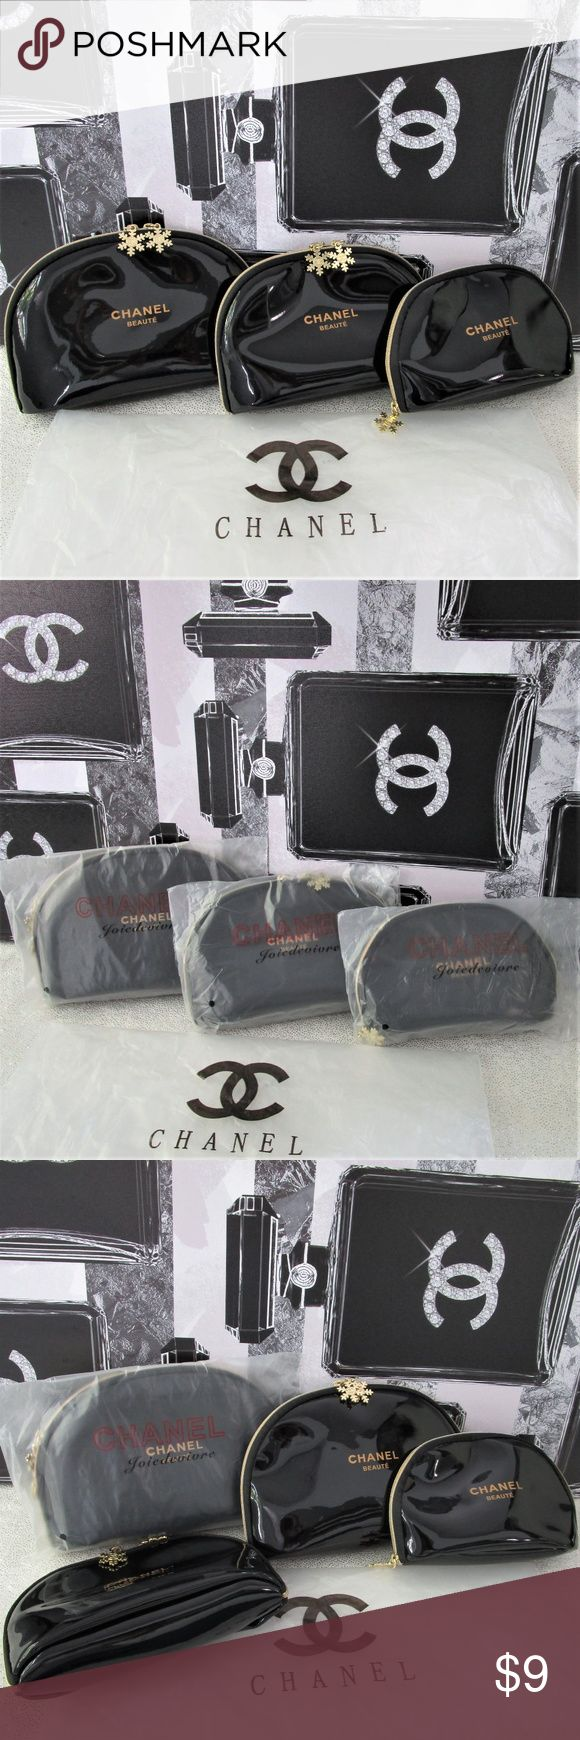 NEW Chanel Black Snowflake Makeup Bags 3 PC Set LIMITED